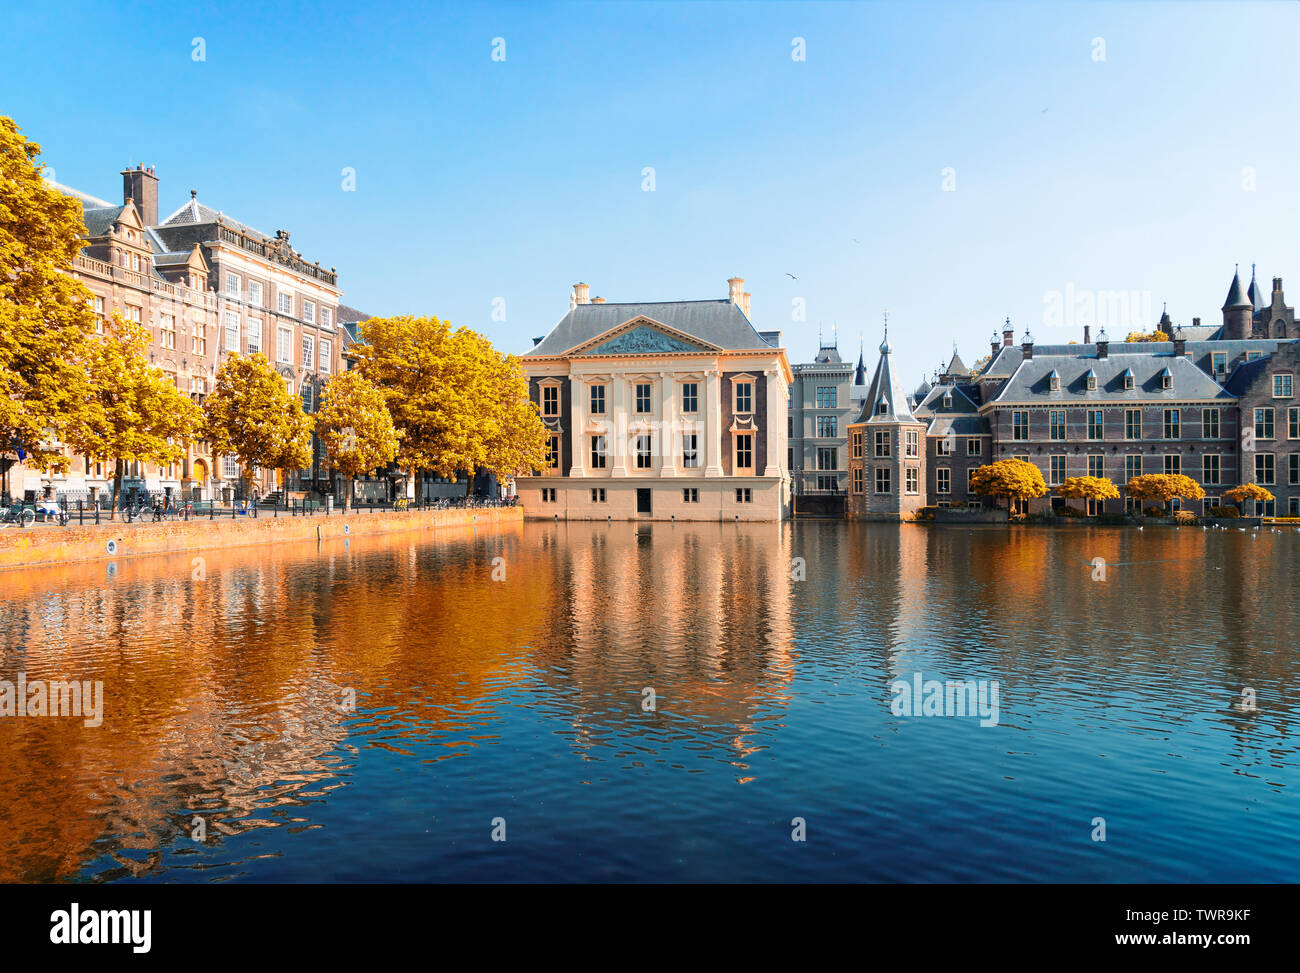 city center of Den Haag - Dutch pairlament, Mauritshuis and with reflections in pond, Netherlands at fall - Stock Image